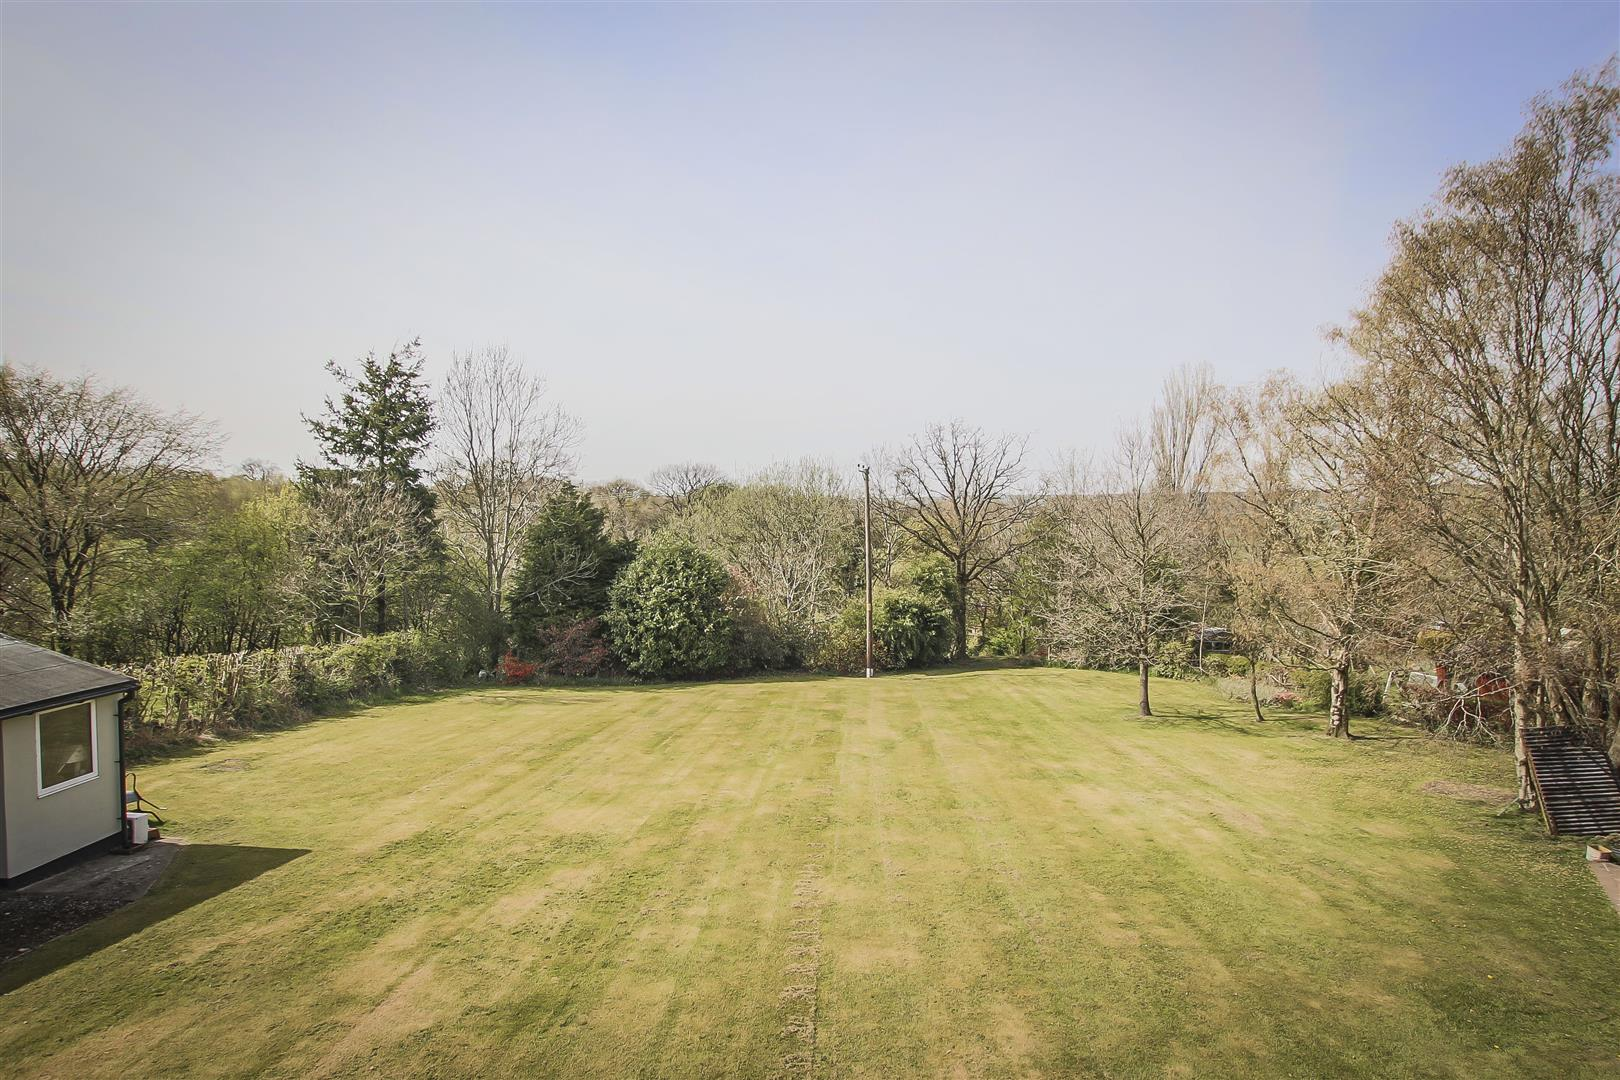 6 Bedroom House For Sale - Image 37